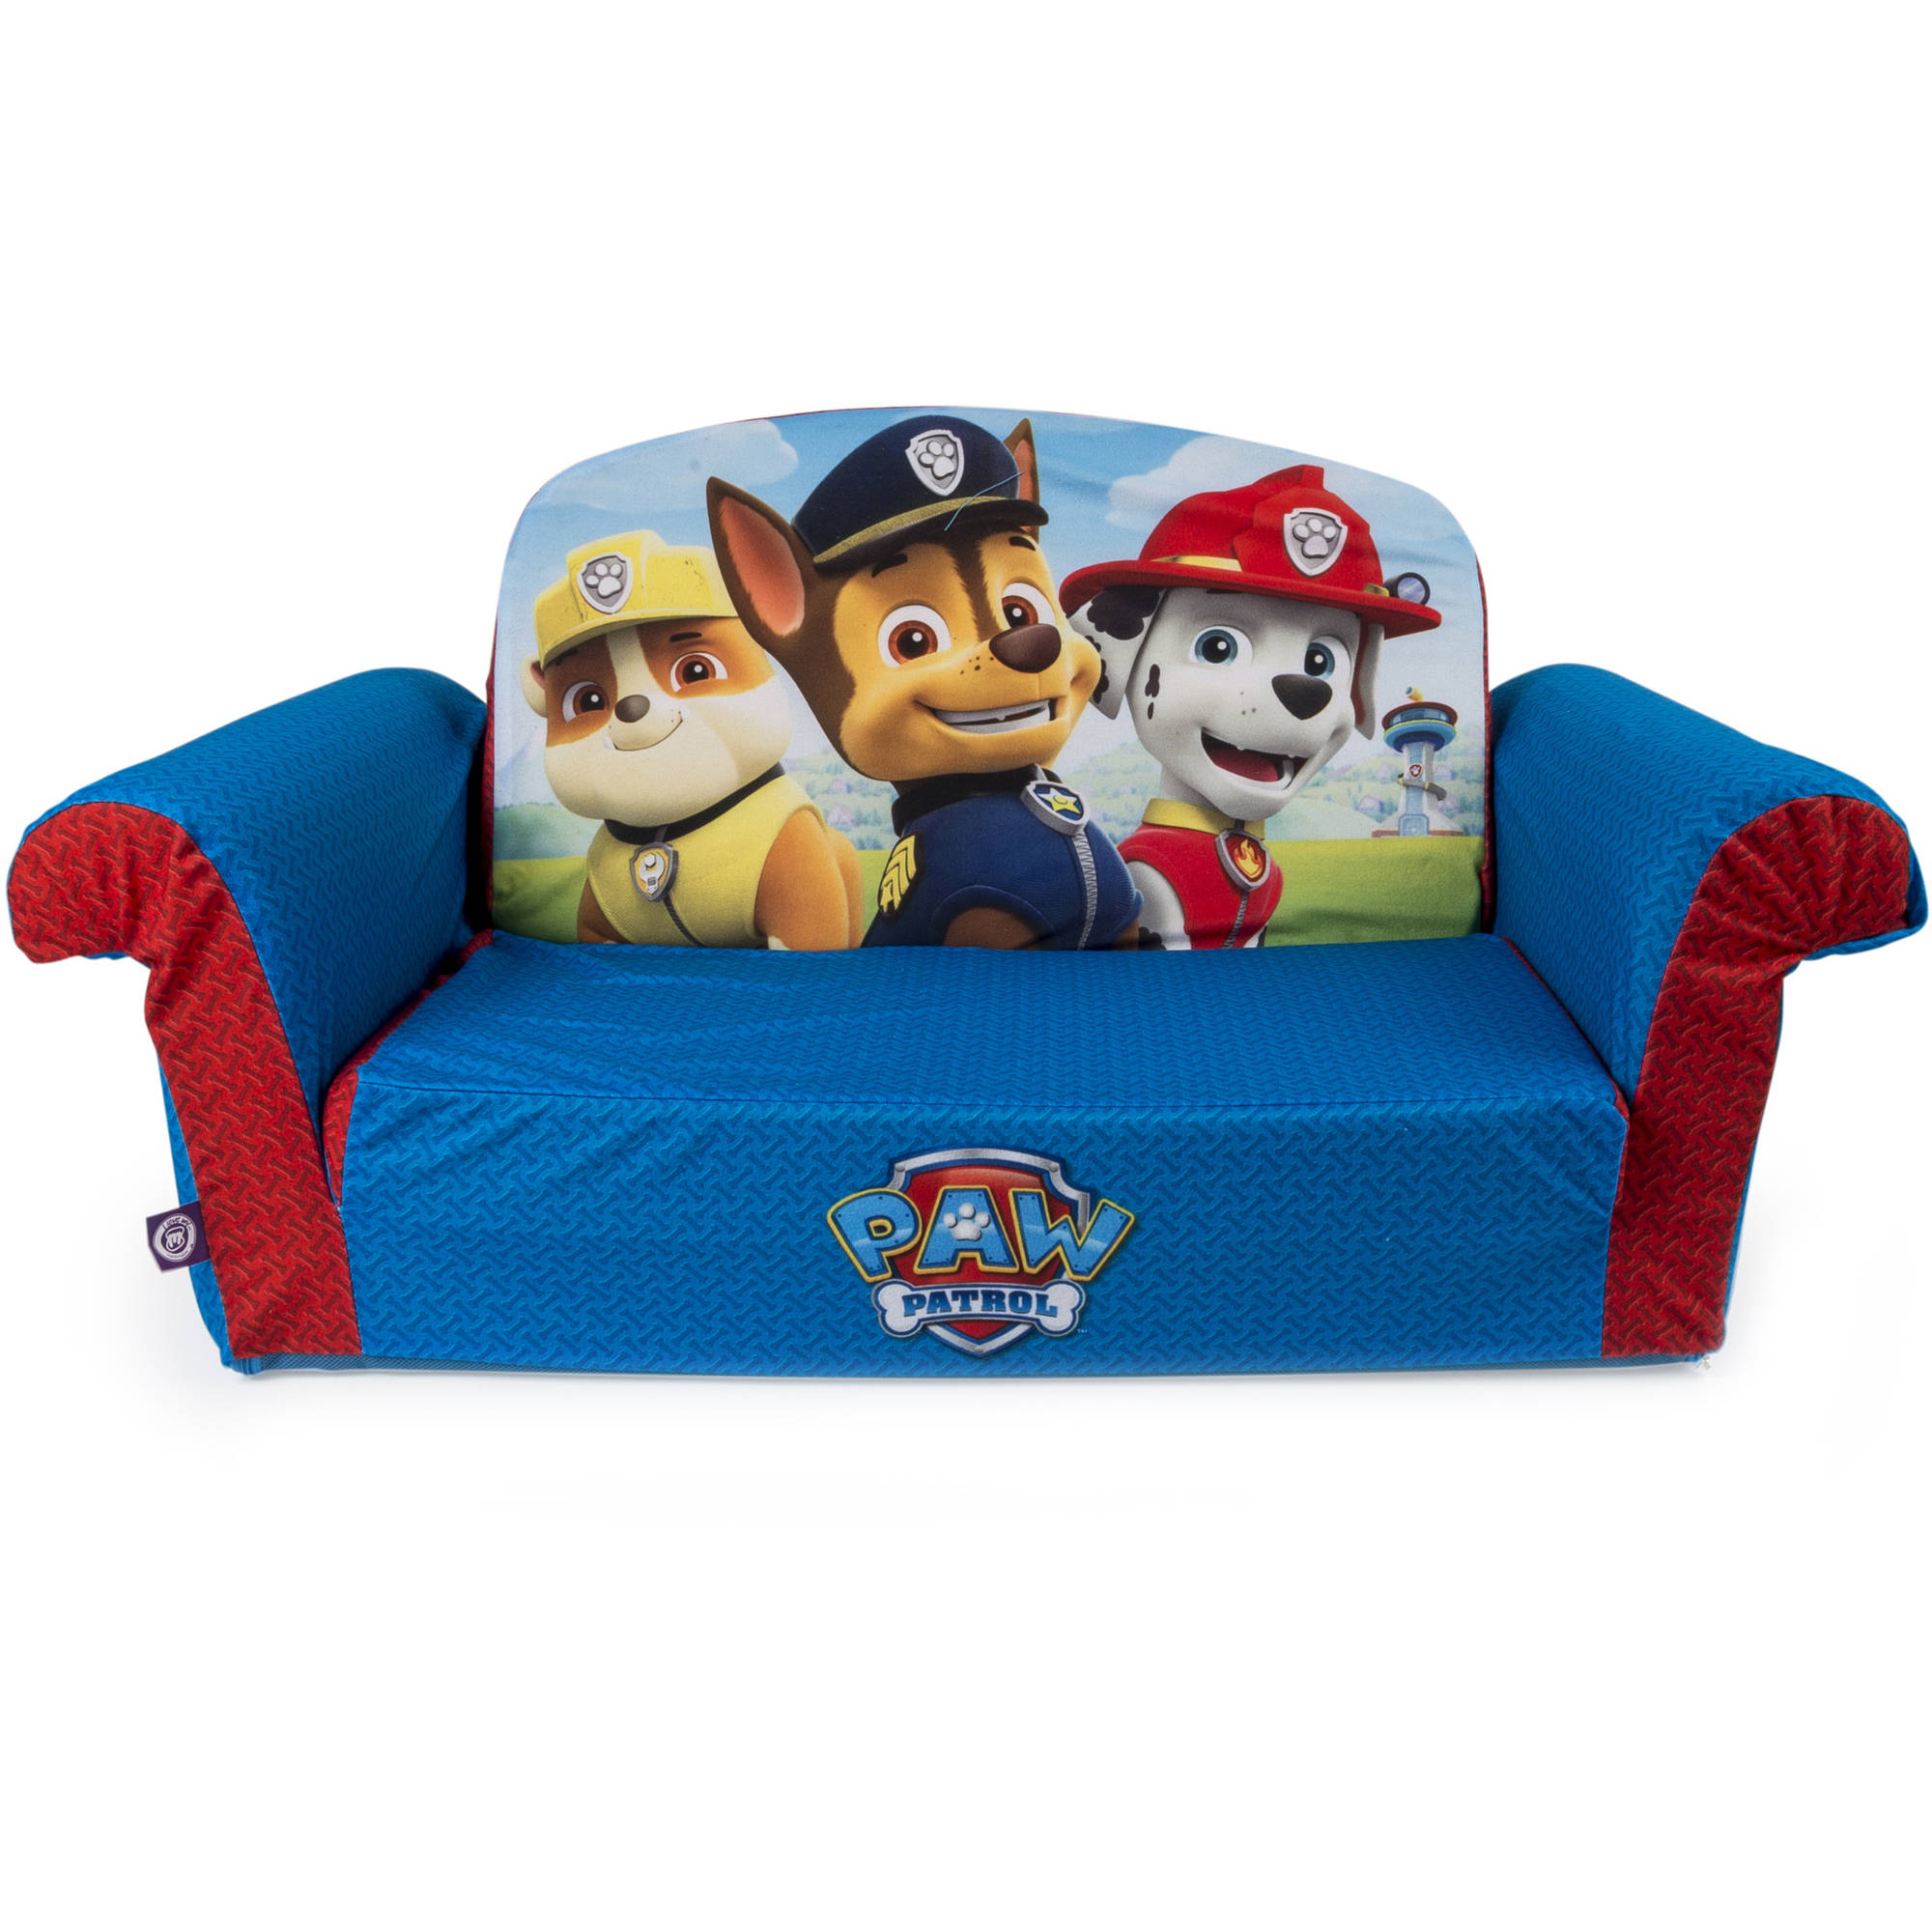 Marshmallow Furniture, Children's 2 in 1 Flip Open Foam Sofa, Nickelodeon  Paw Patrol, by Spin Master - Walmart.com